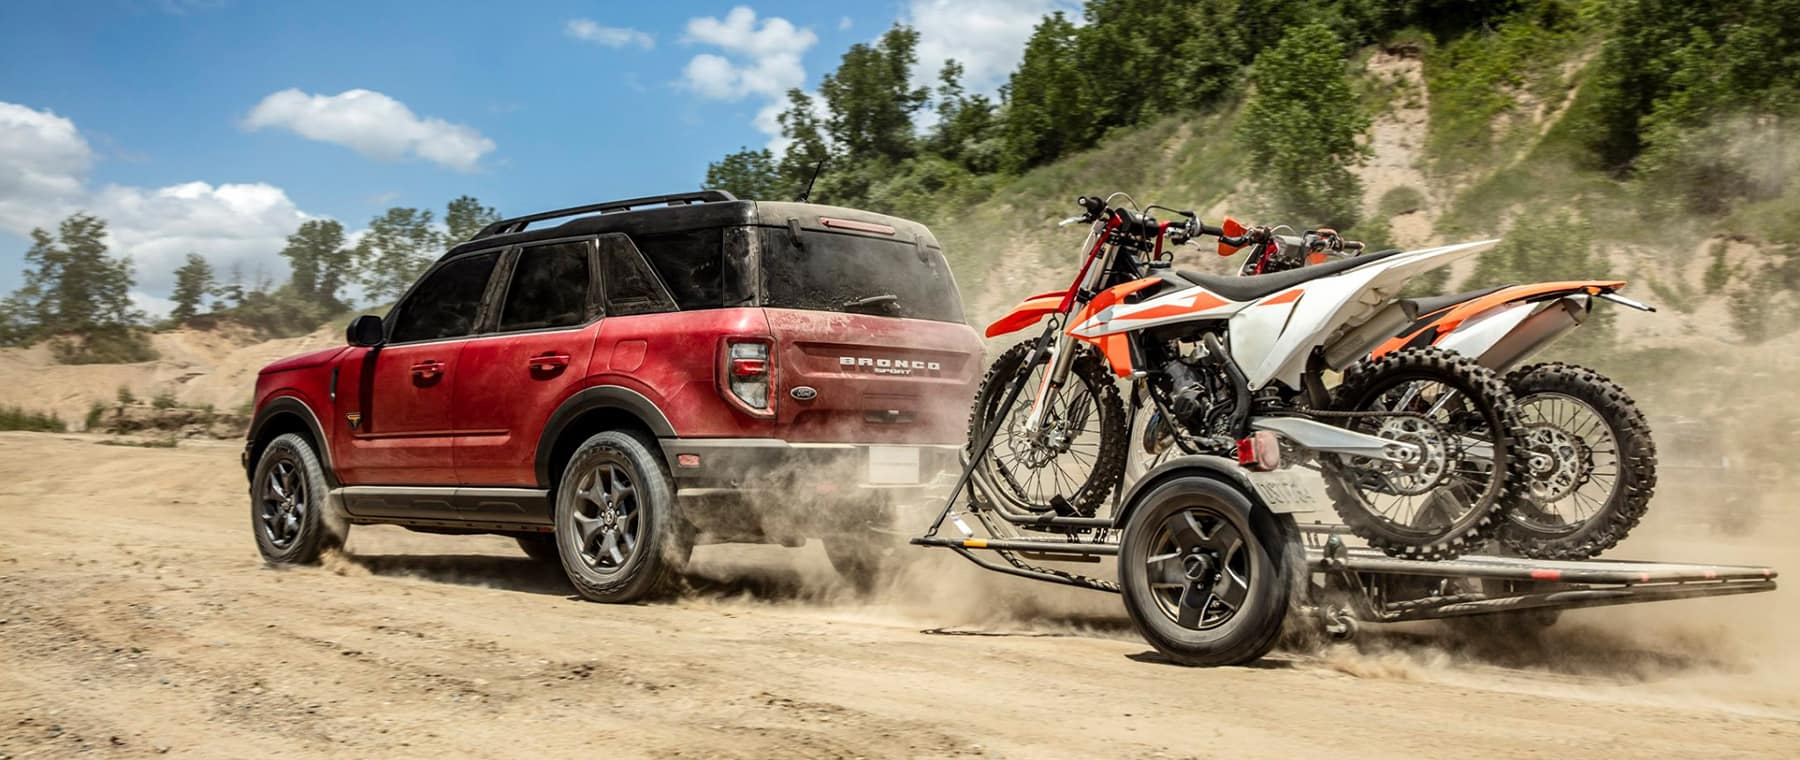 2021 Bronco pulling small trailer